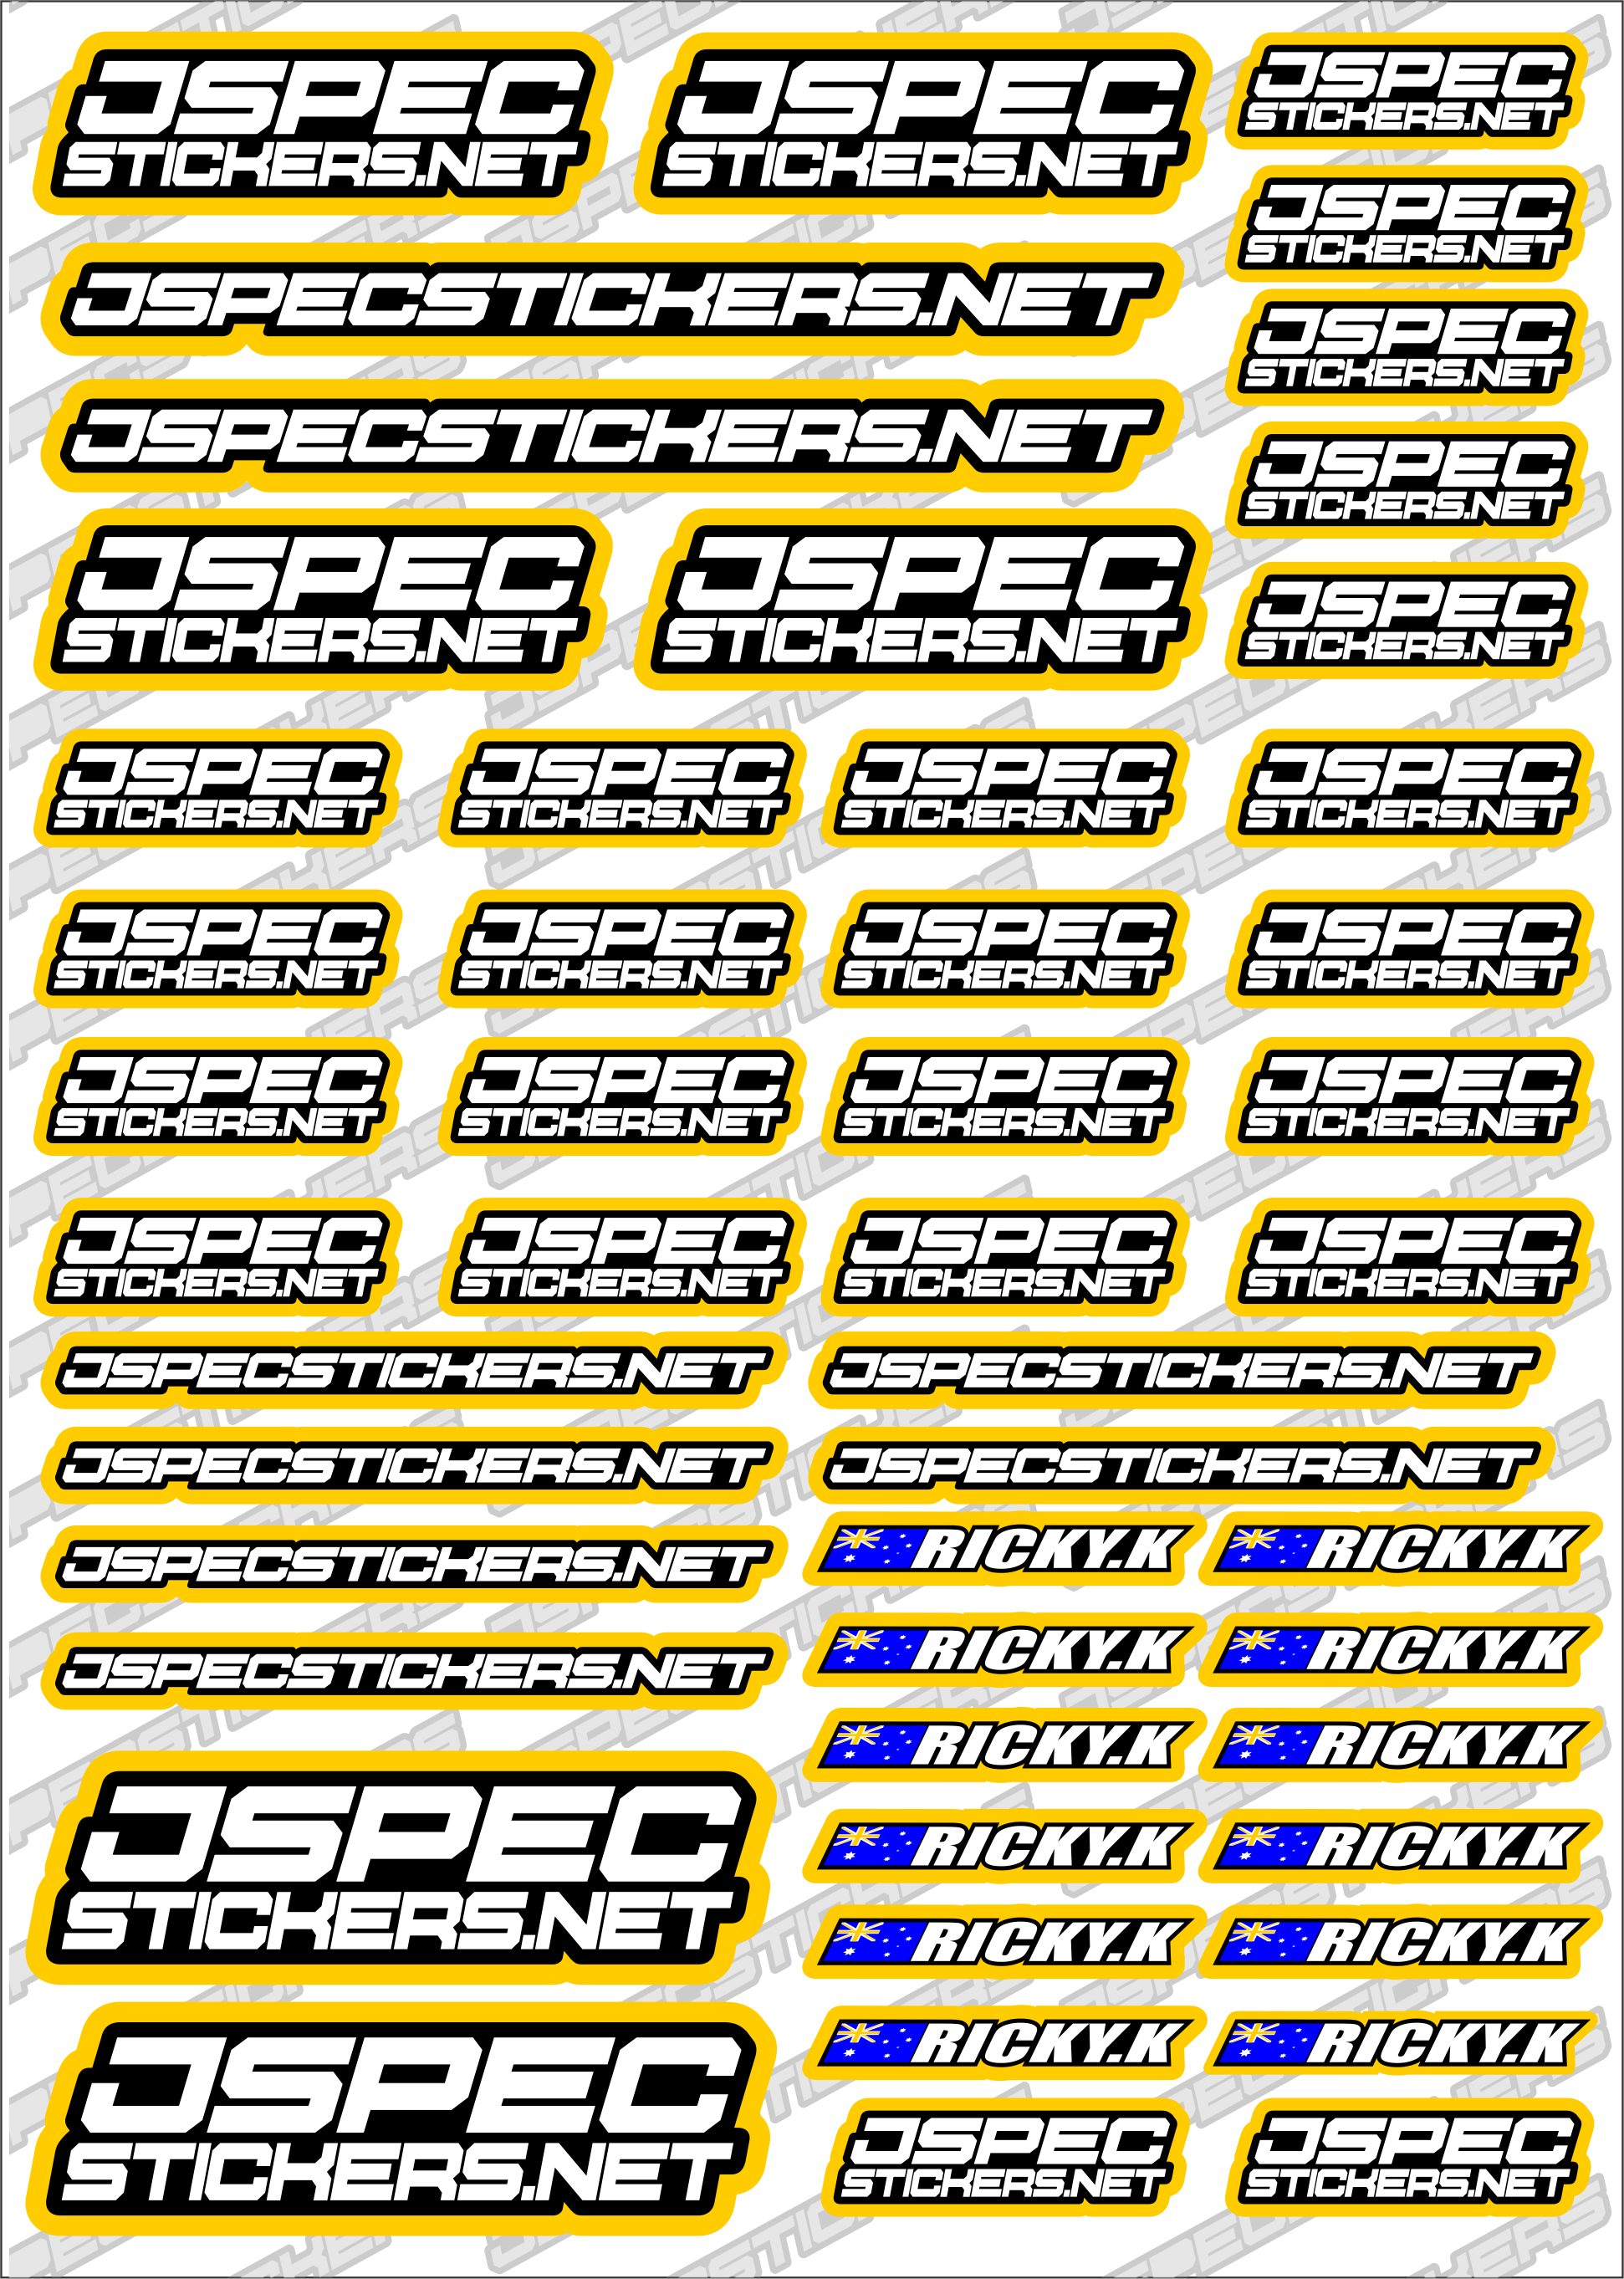 RK EDITION CUSTOM STICKERS - Jspec Stickers